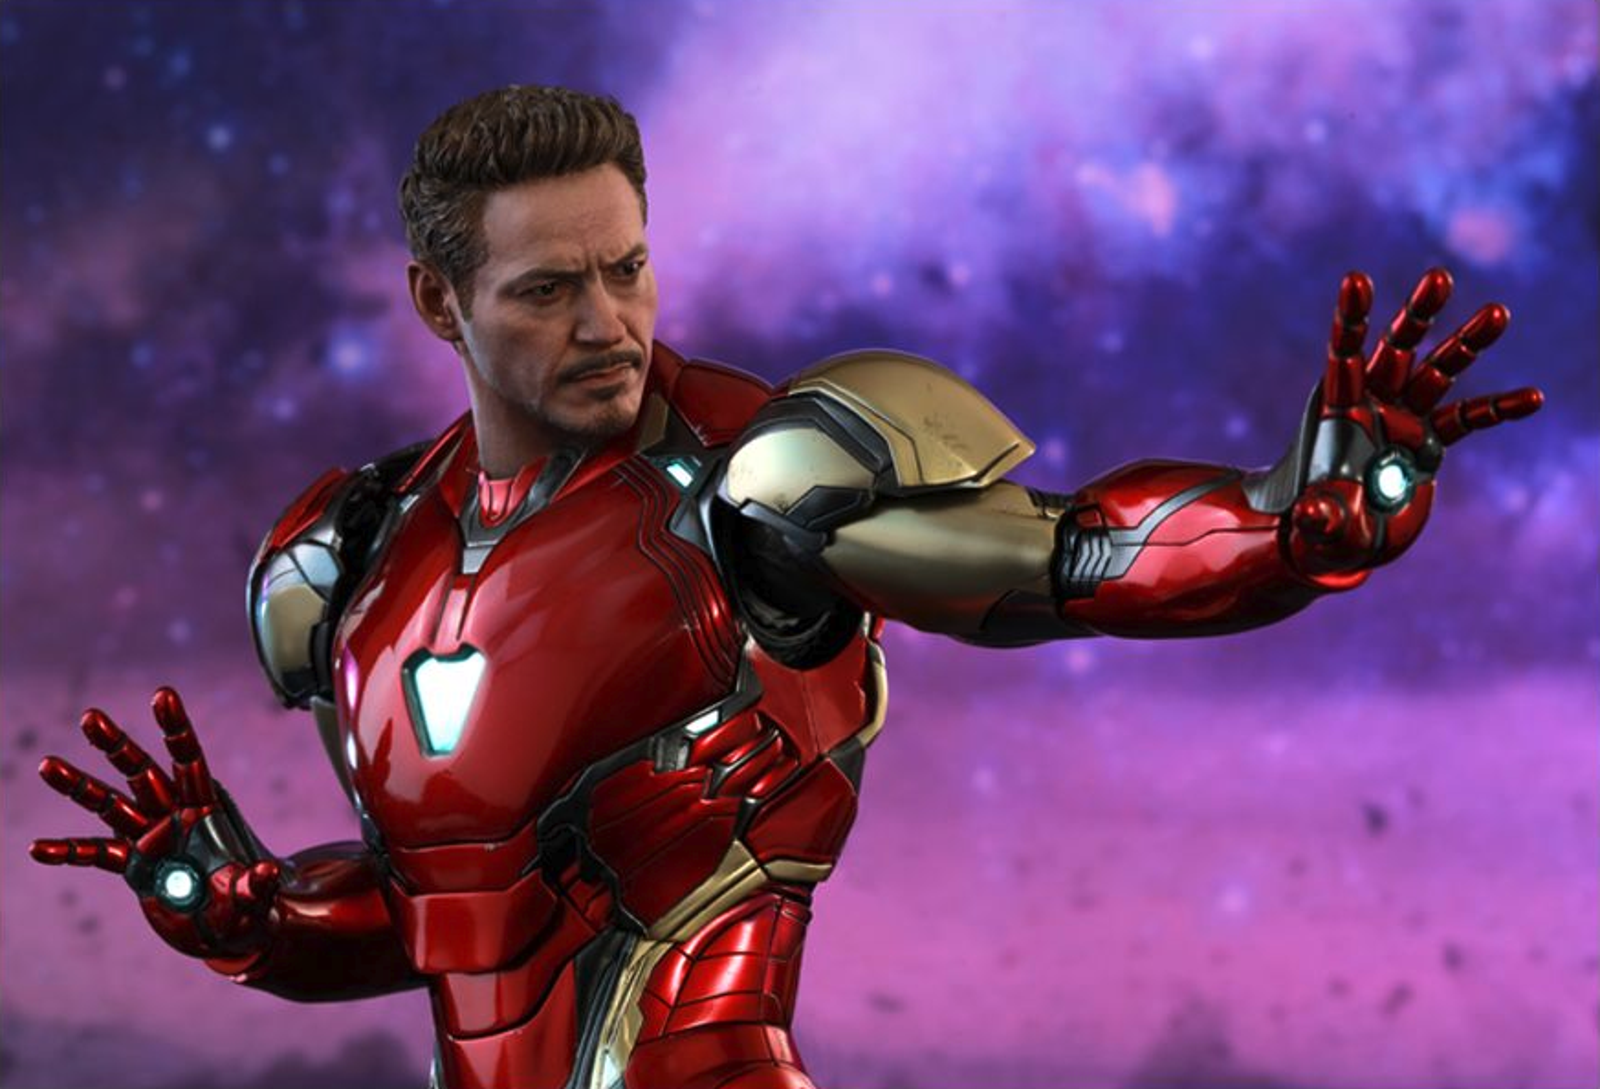 Illustration for article titled Se filtra en detalle el diseño de la nueva armadura de Iron Man para iAvengers: Endgame/i